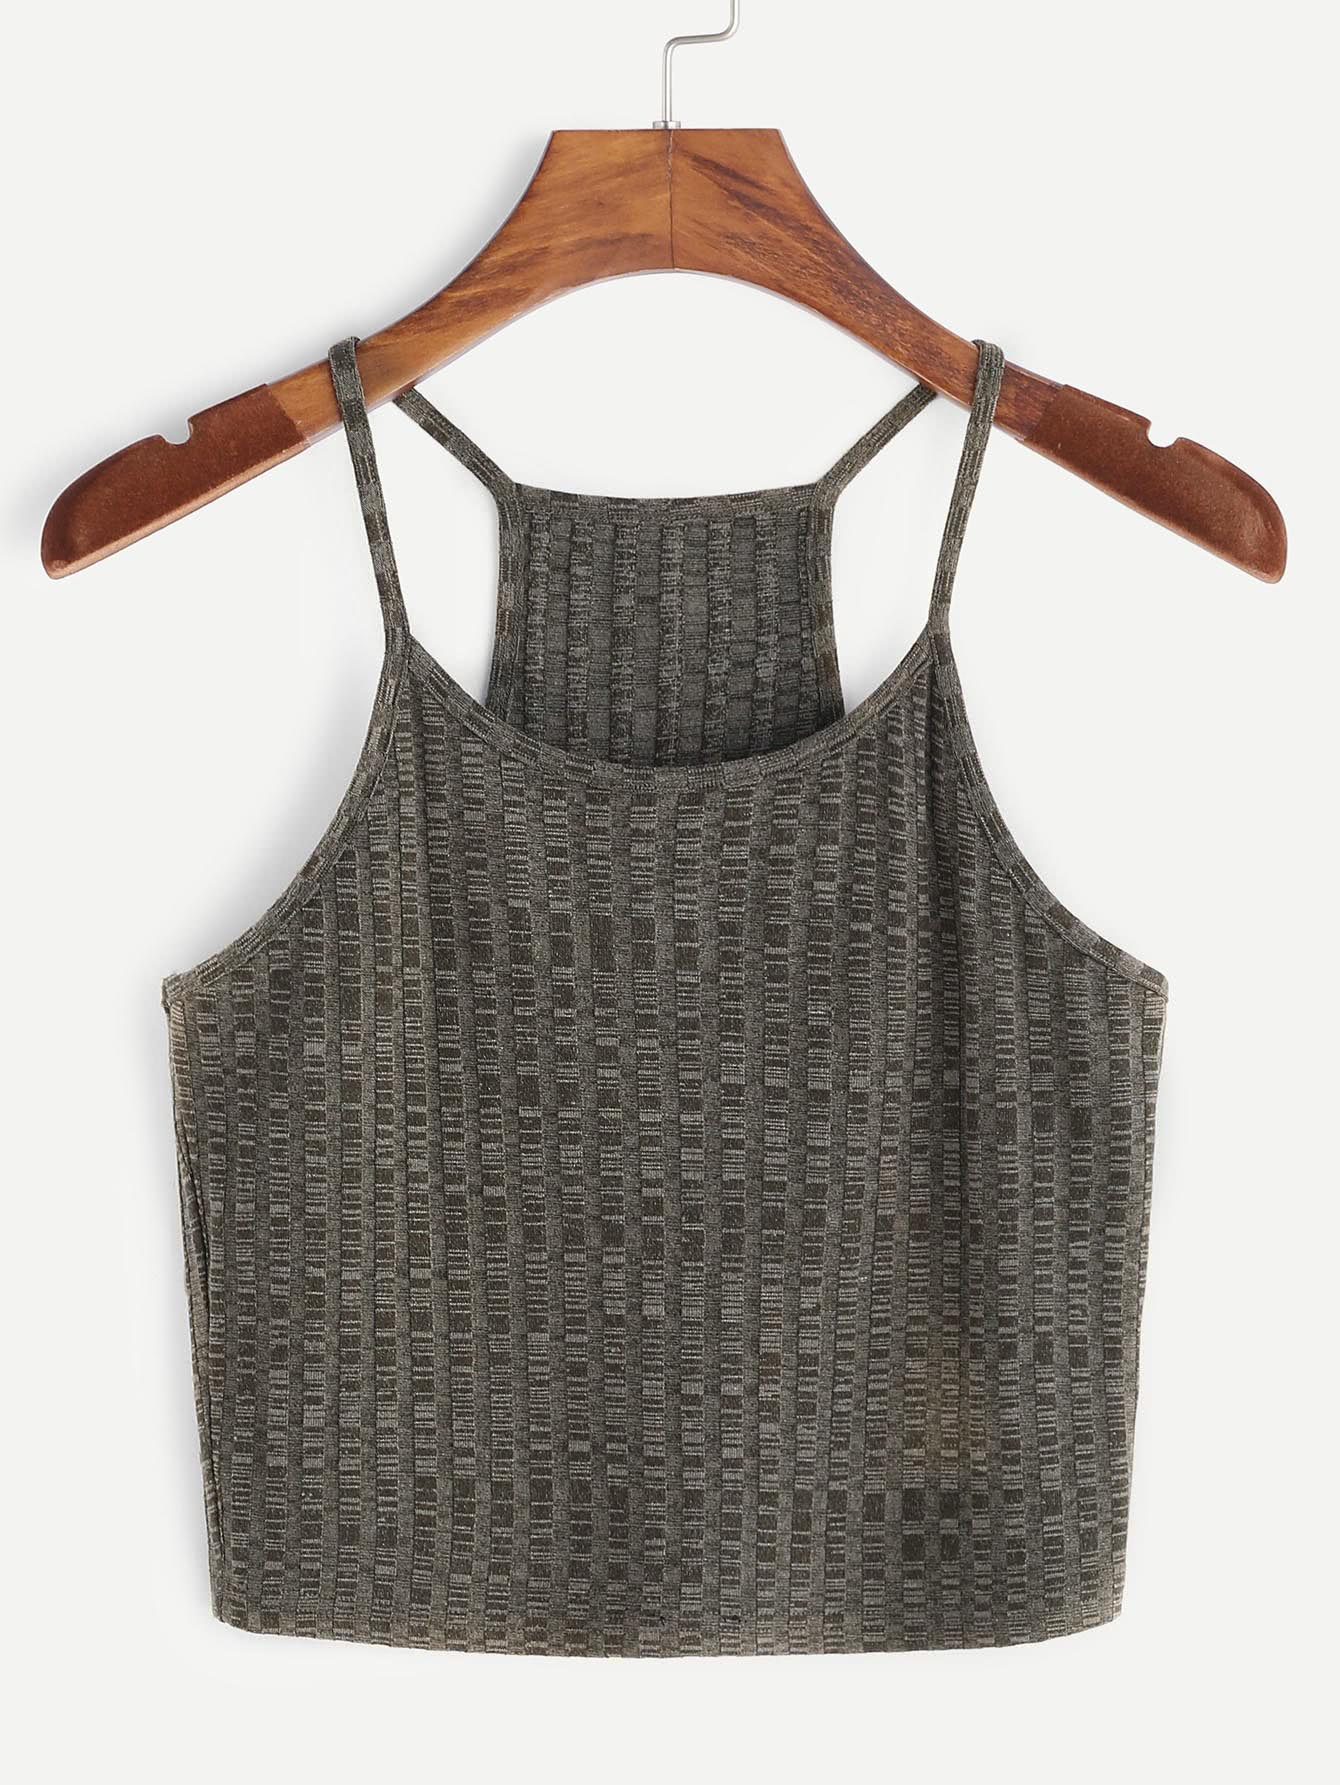 Olive Green Ribbed Knit Racerback Cami Top vest170106701